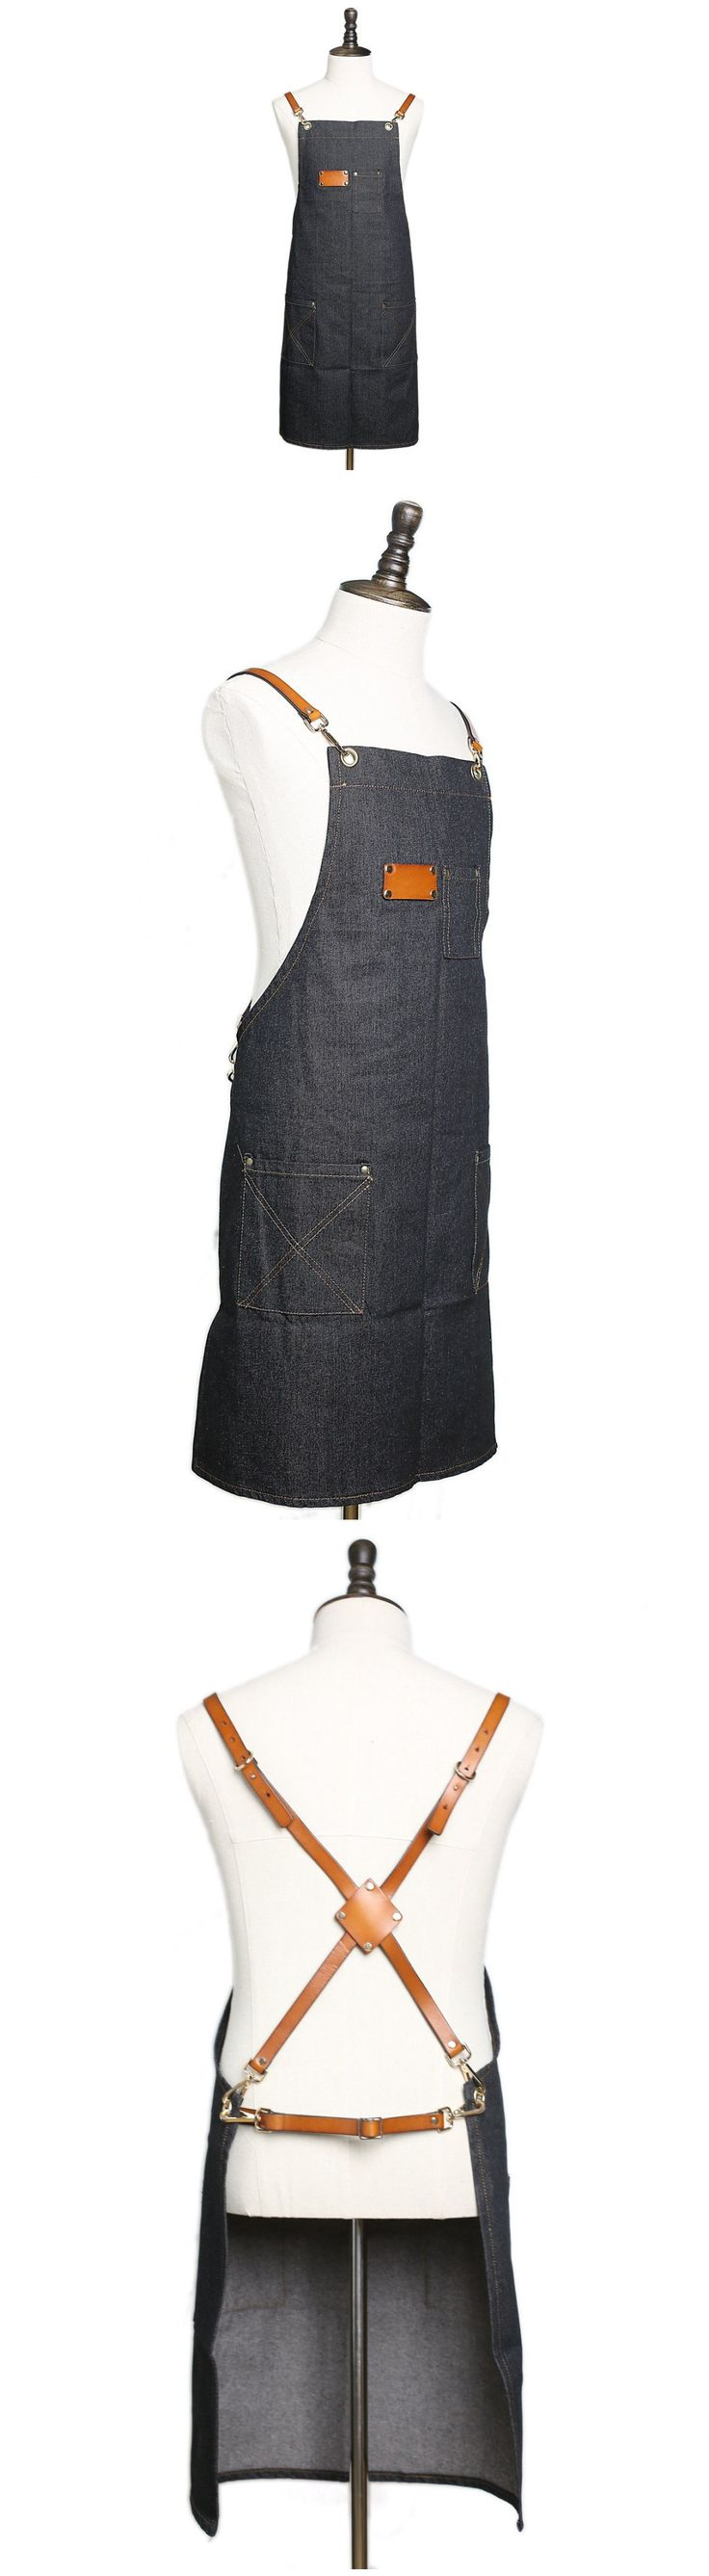 Waxed Canvas and Leather Apron Craftsman's Apron Barista's Apron with Pockets